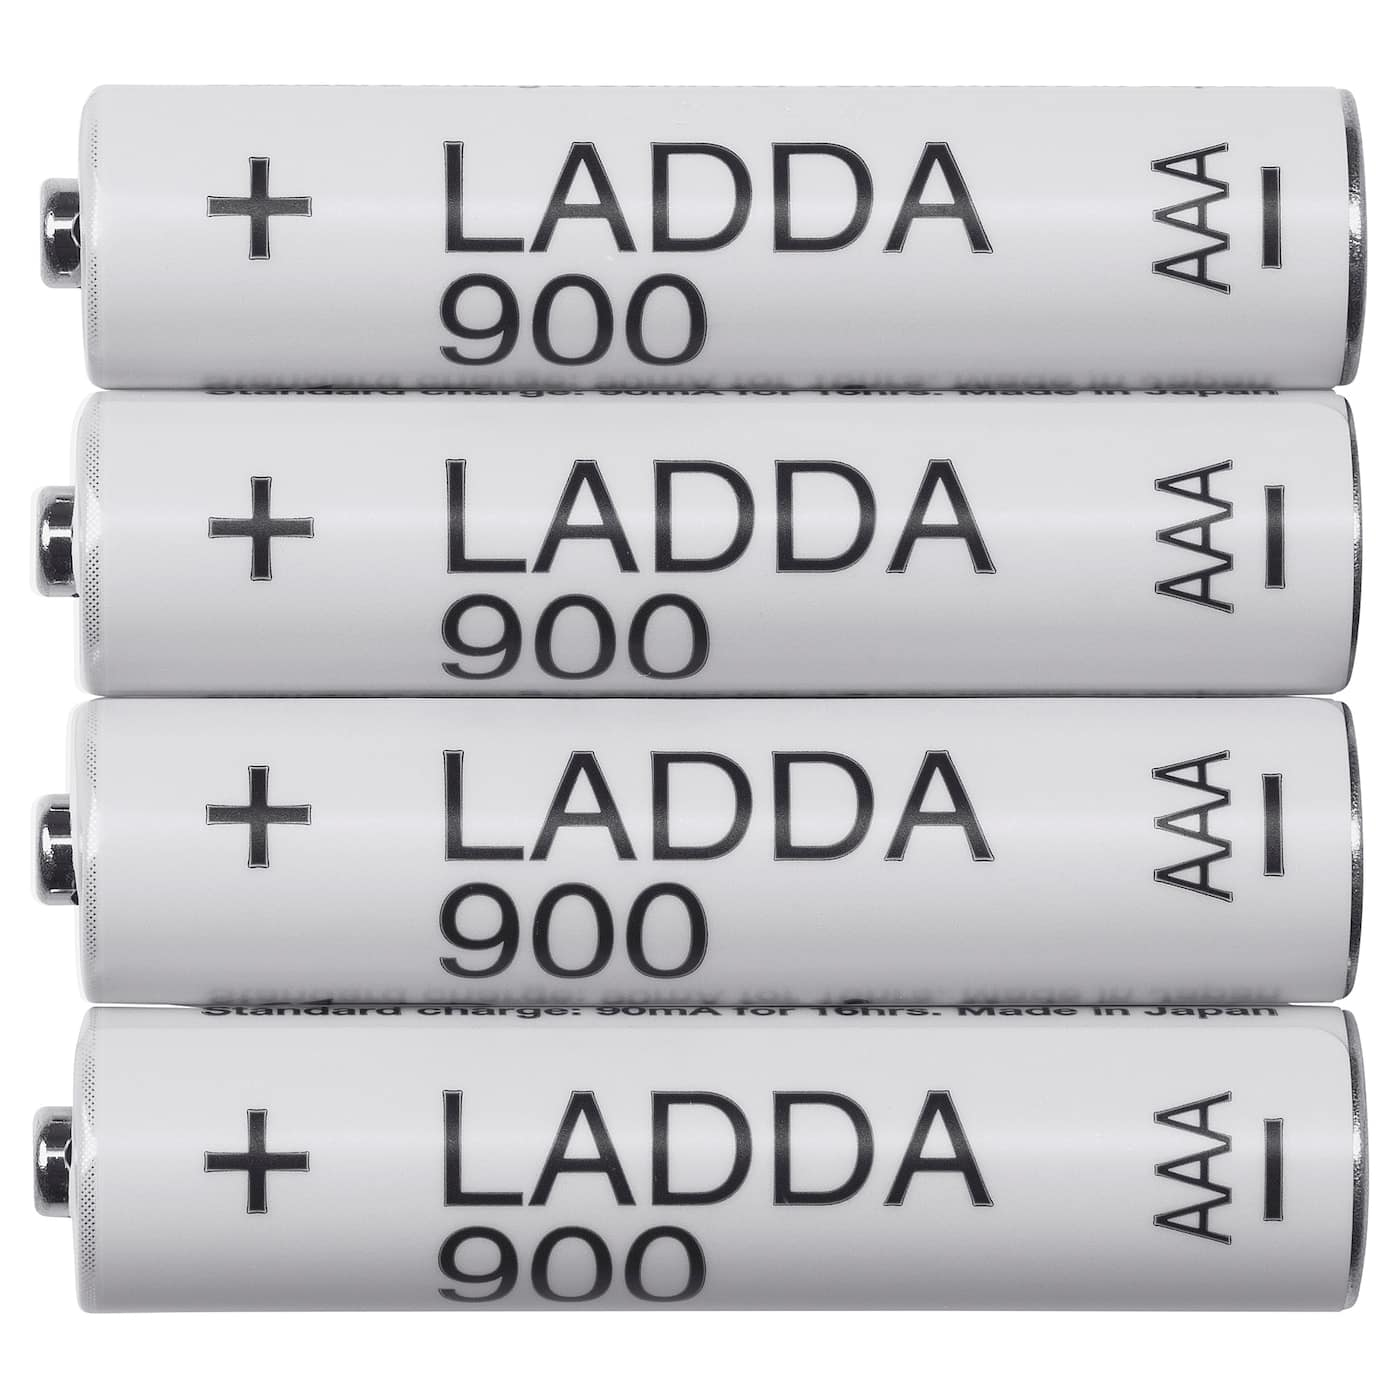 4-pk Ladda AAA 900mAh rechargeable batteries for $1.99 at IKEA B&M (Portland, OR), YMMV elsewhere